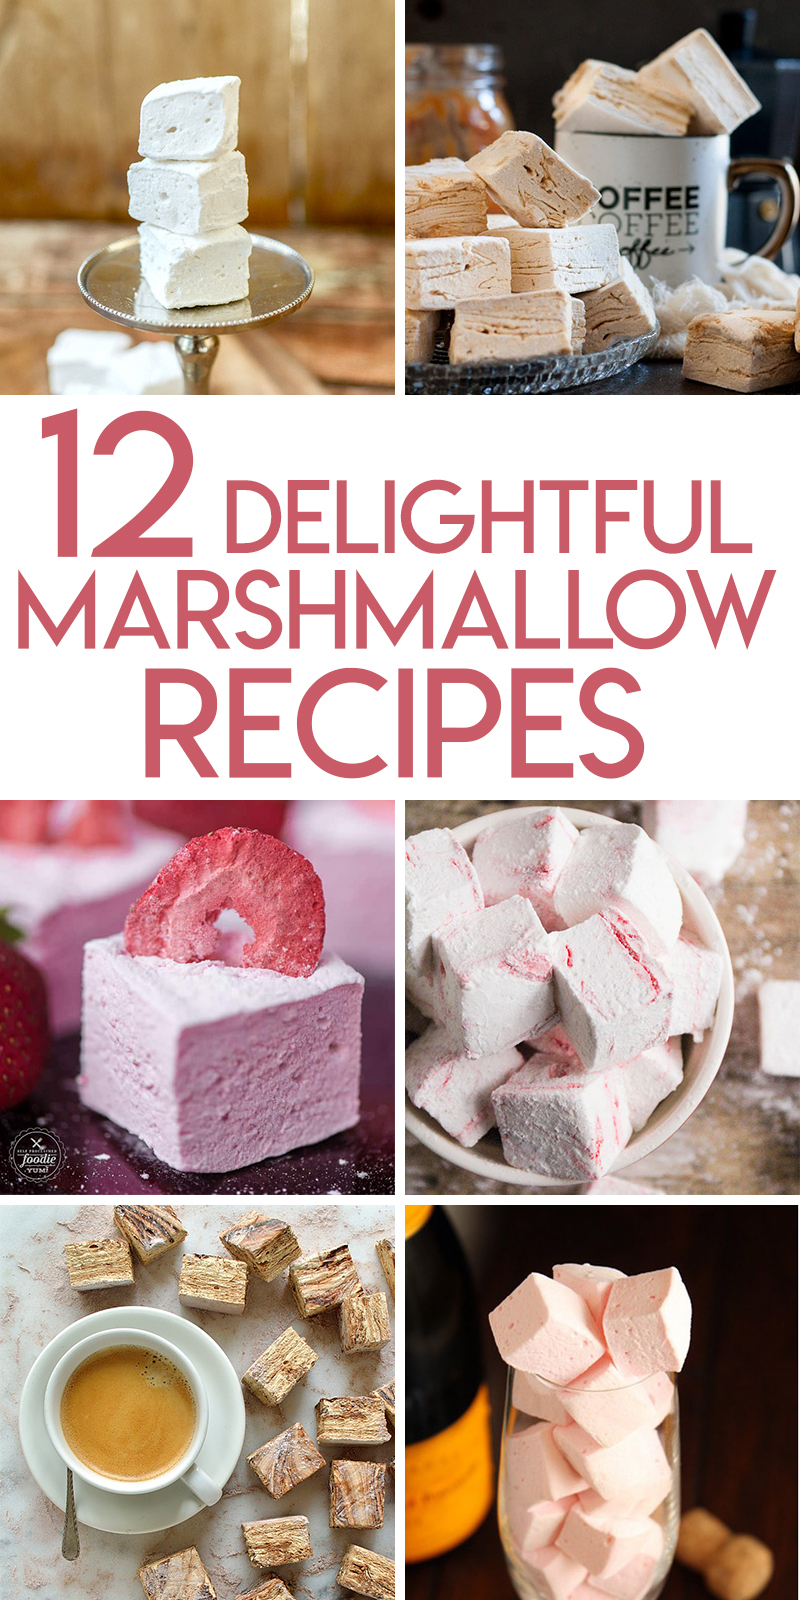 12 amazing different homemade marshmallow flavors and recipes